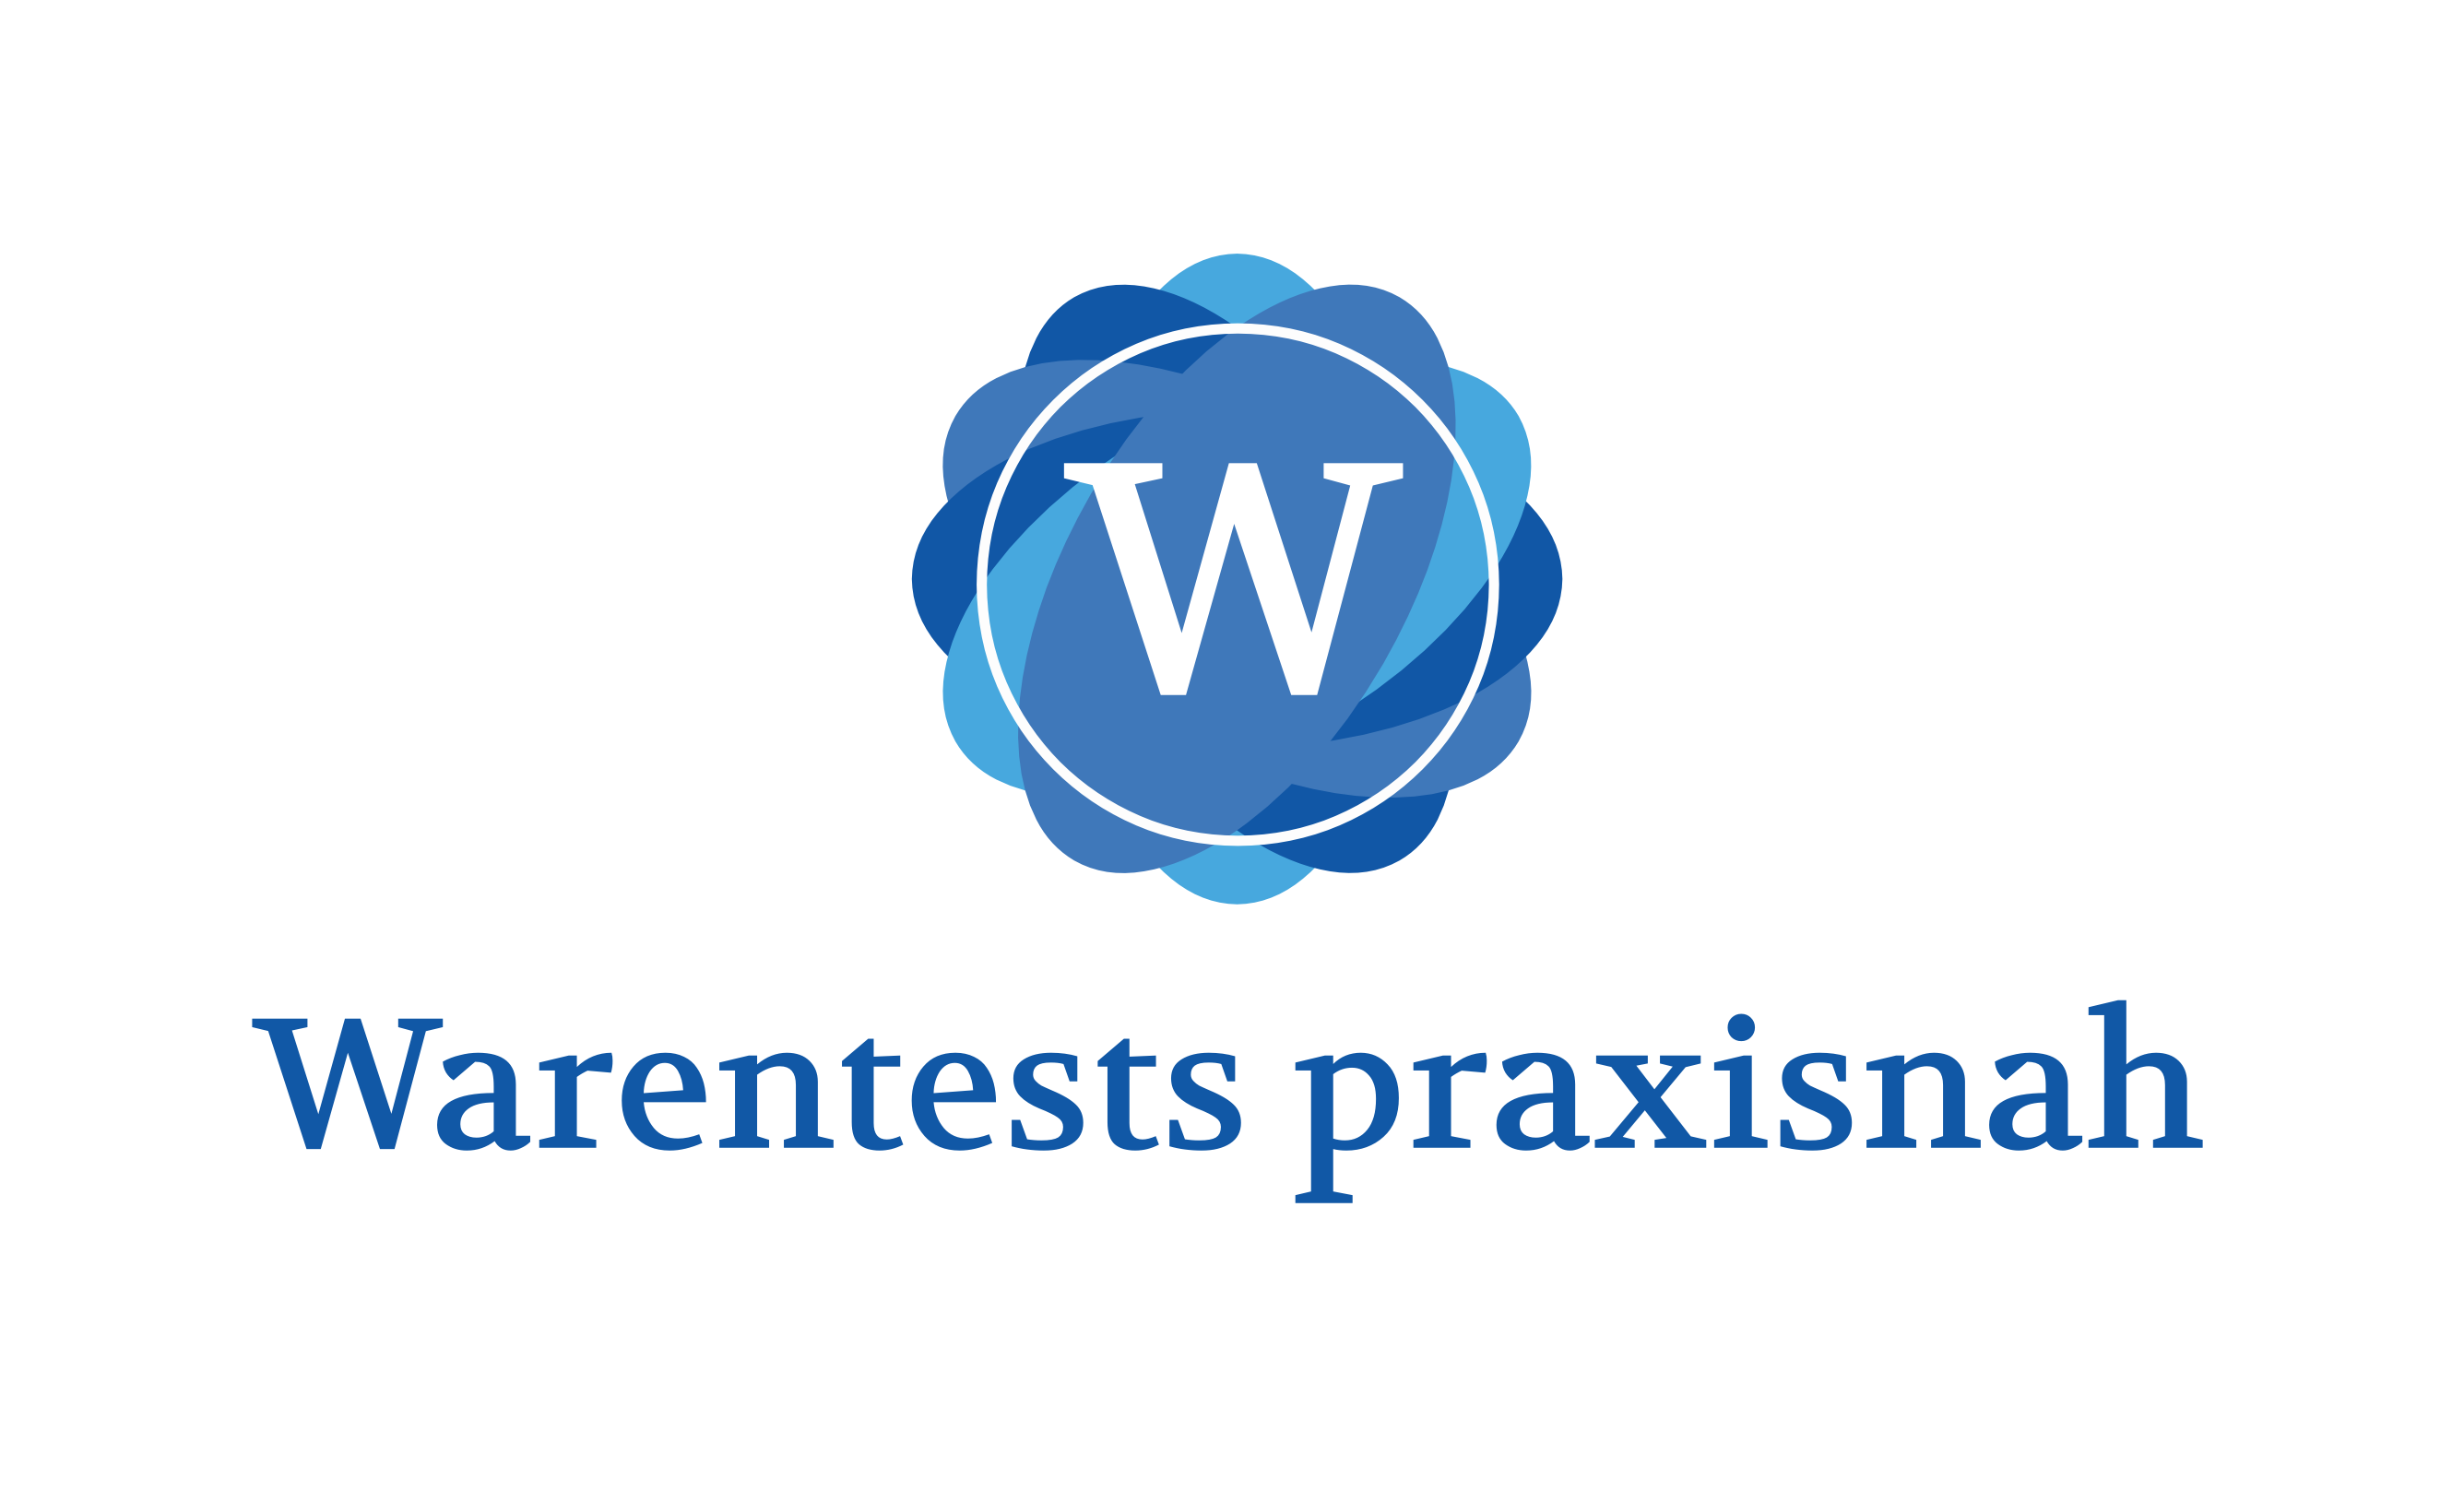 Warentests praxisnah